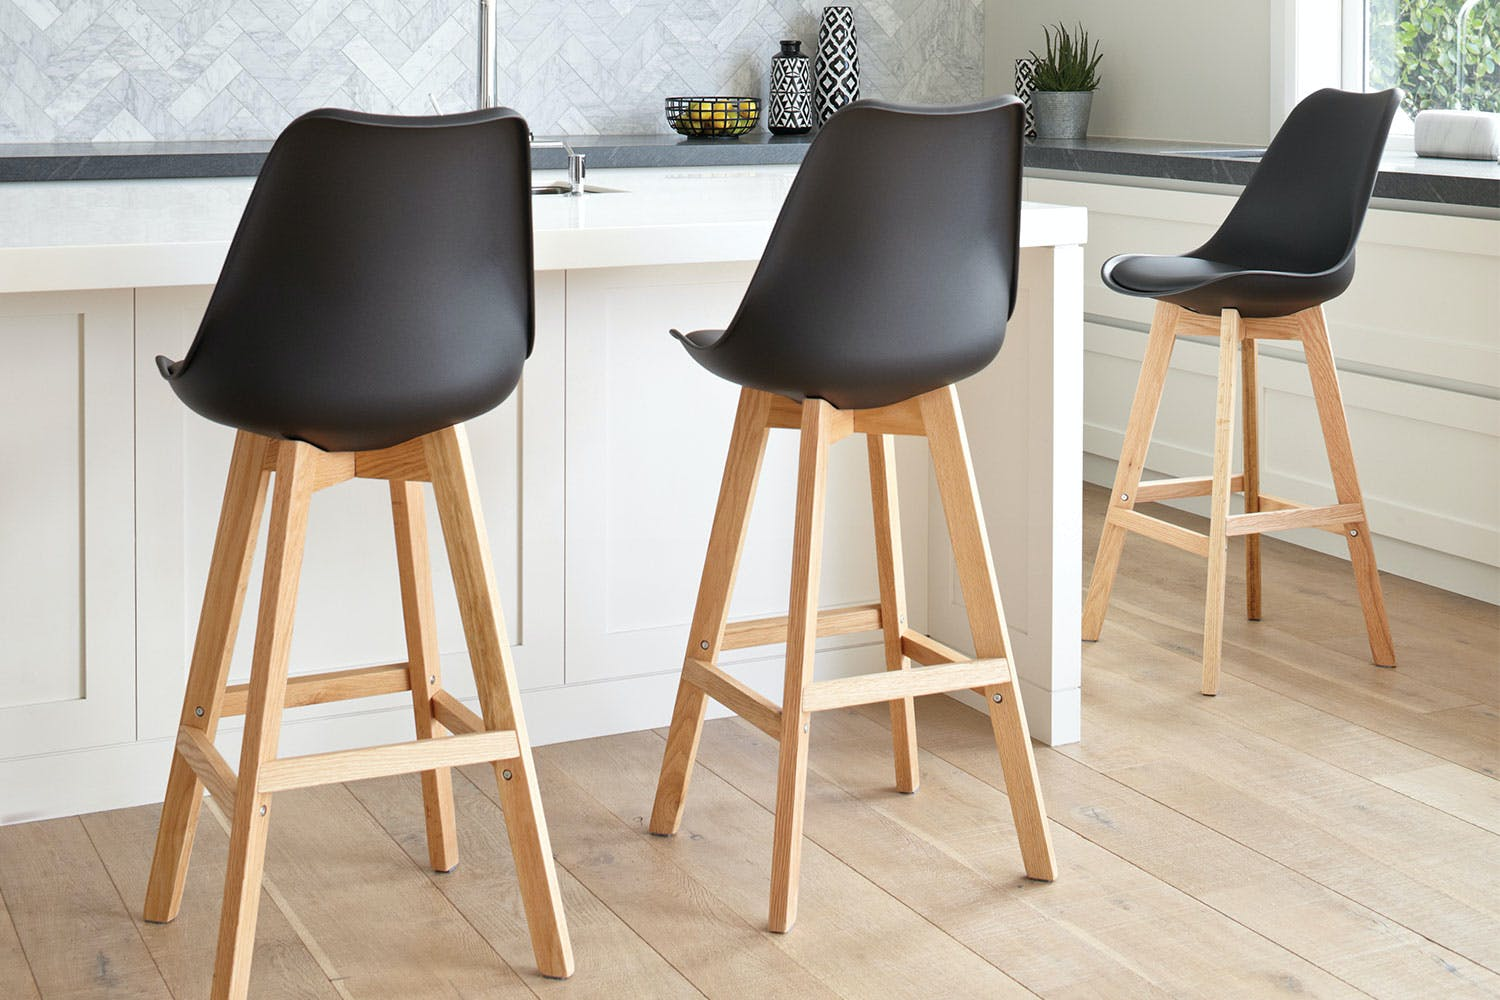 stuka bar stool by paulack furniture harvey norman new zealand